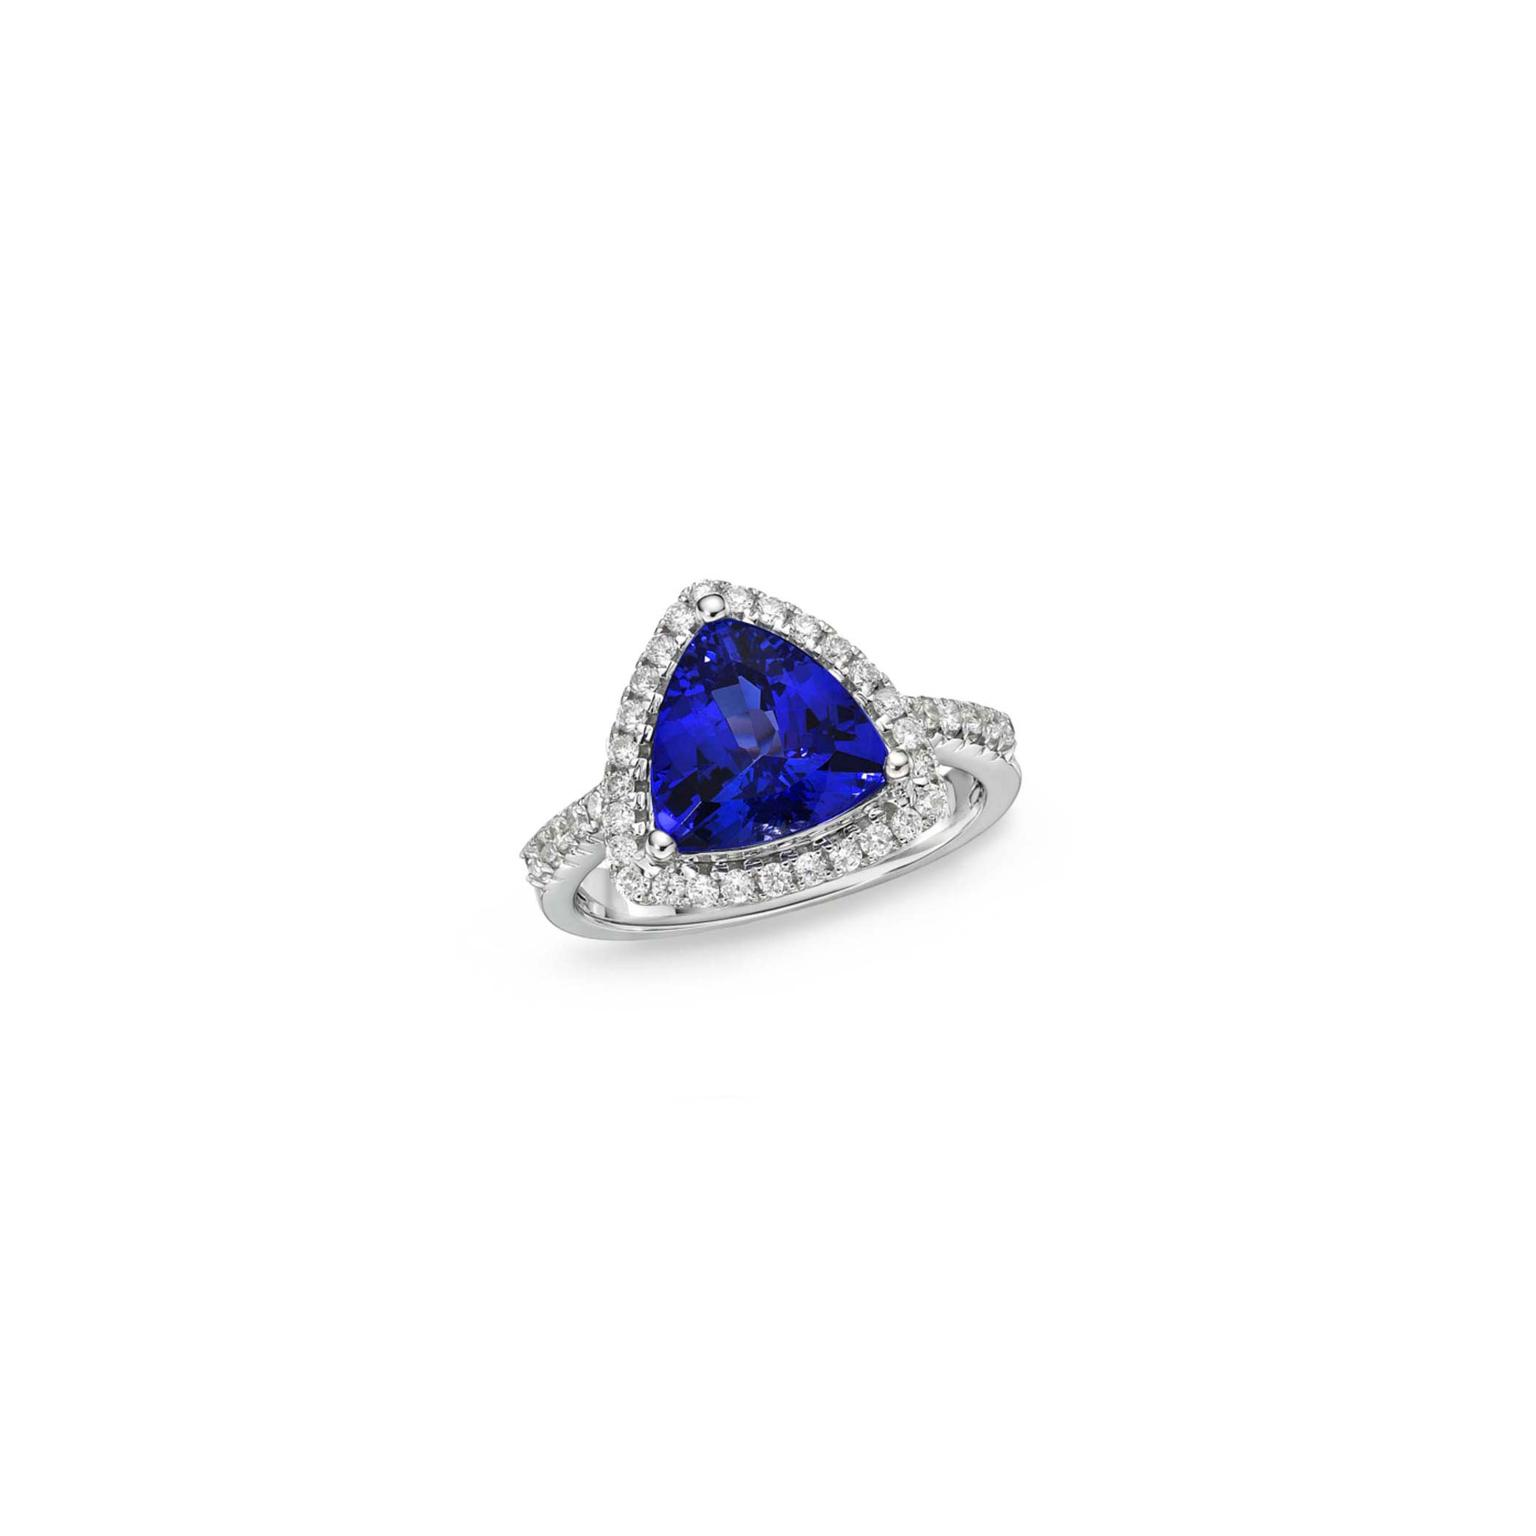 TanzaniteOne trillion tanzanite and diamond ring_zoom